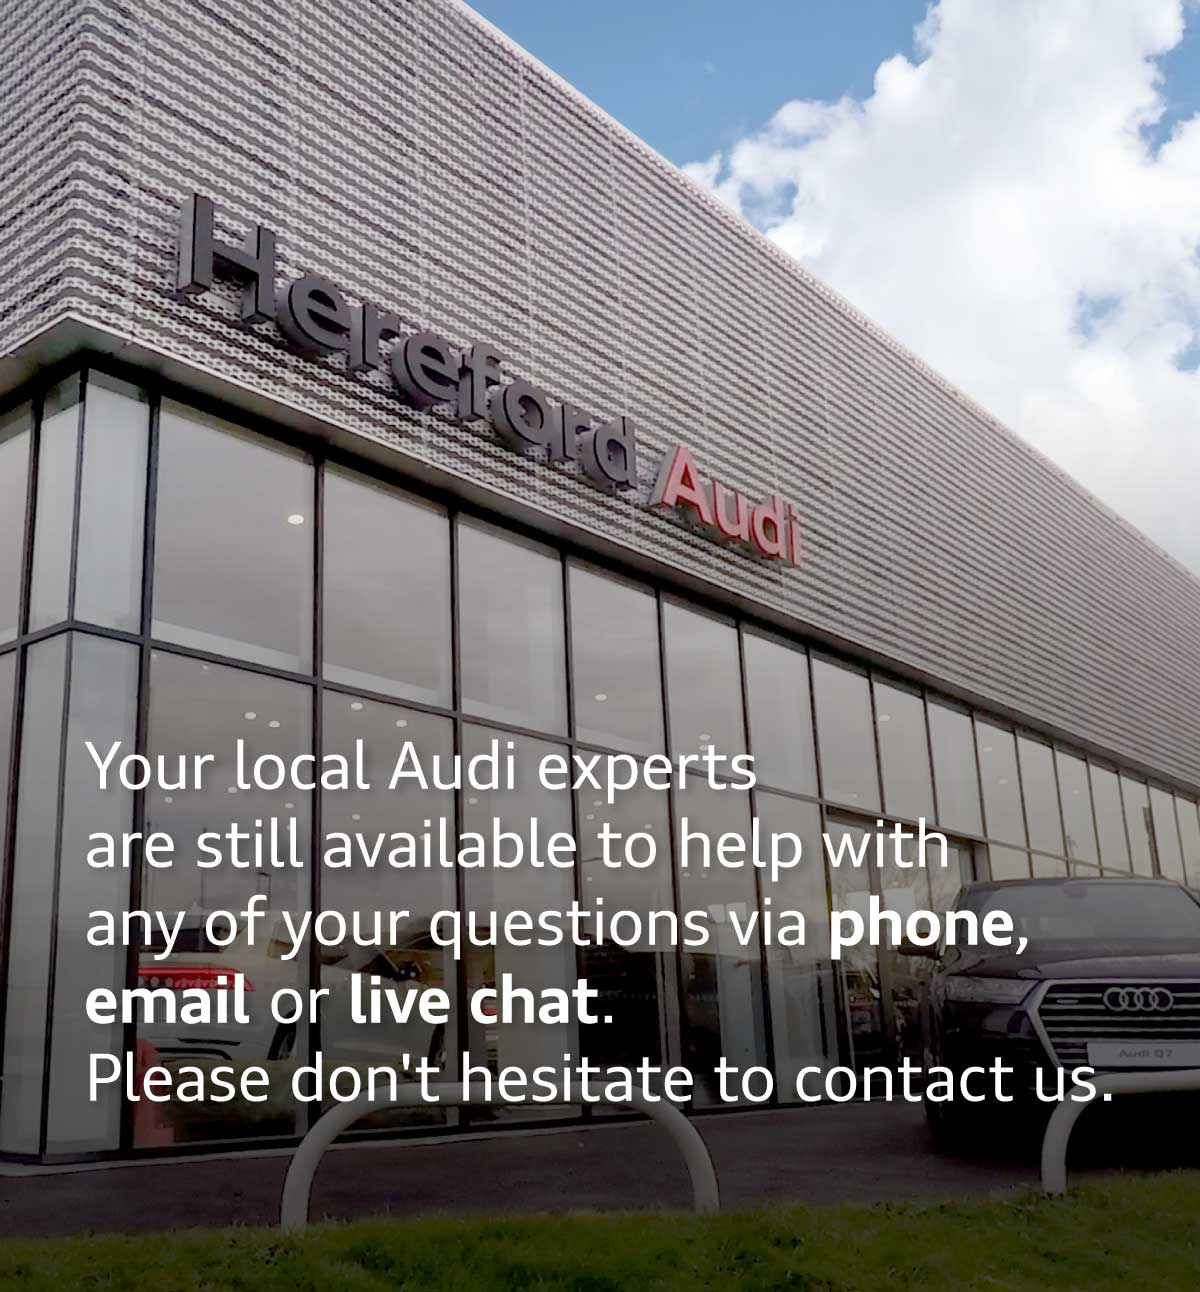 Audi Temporary Closed Message